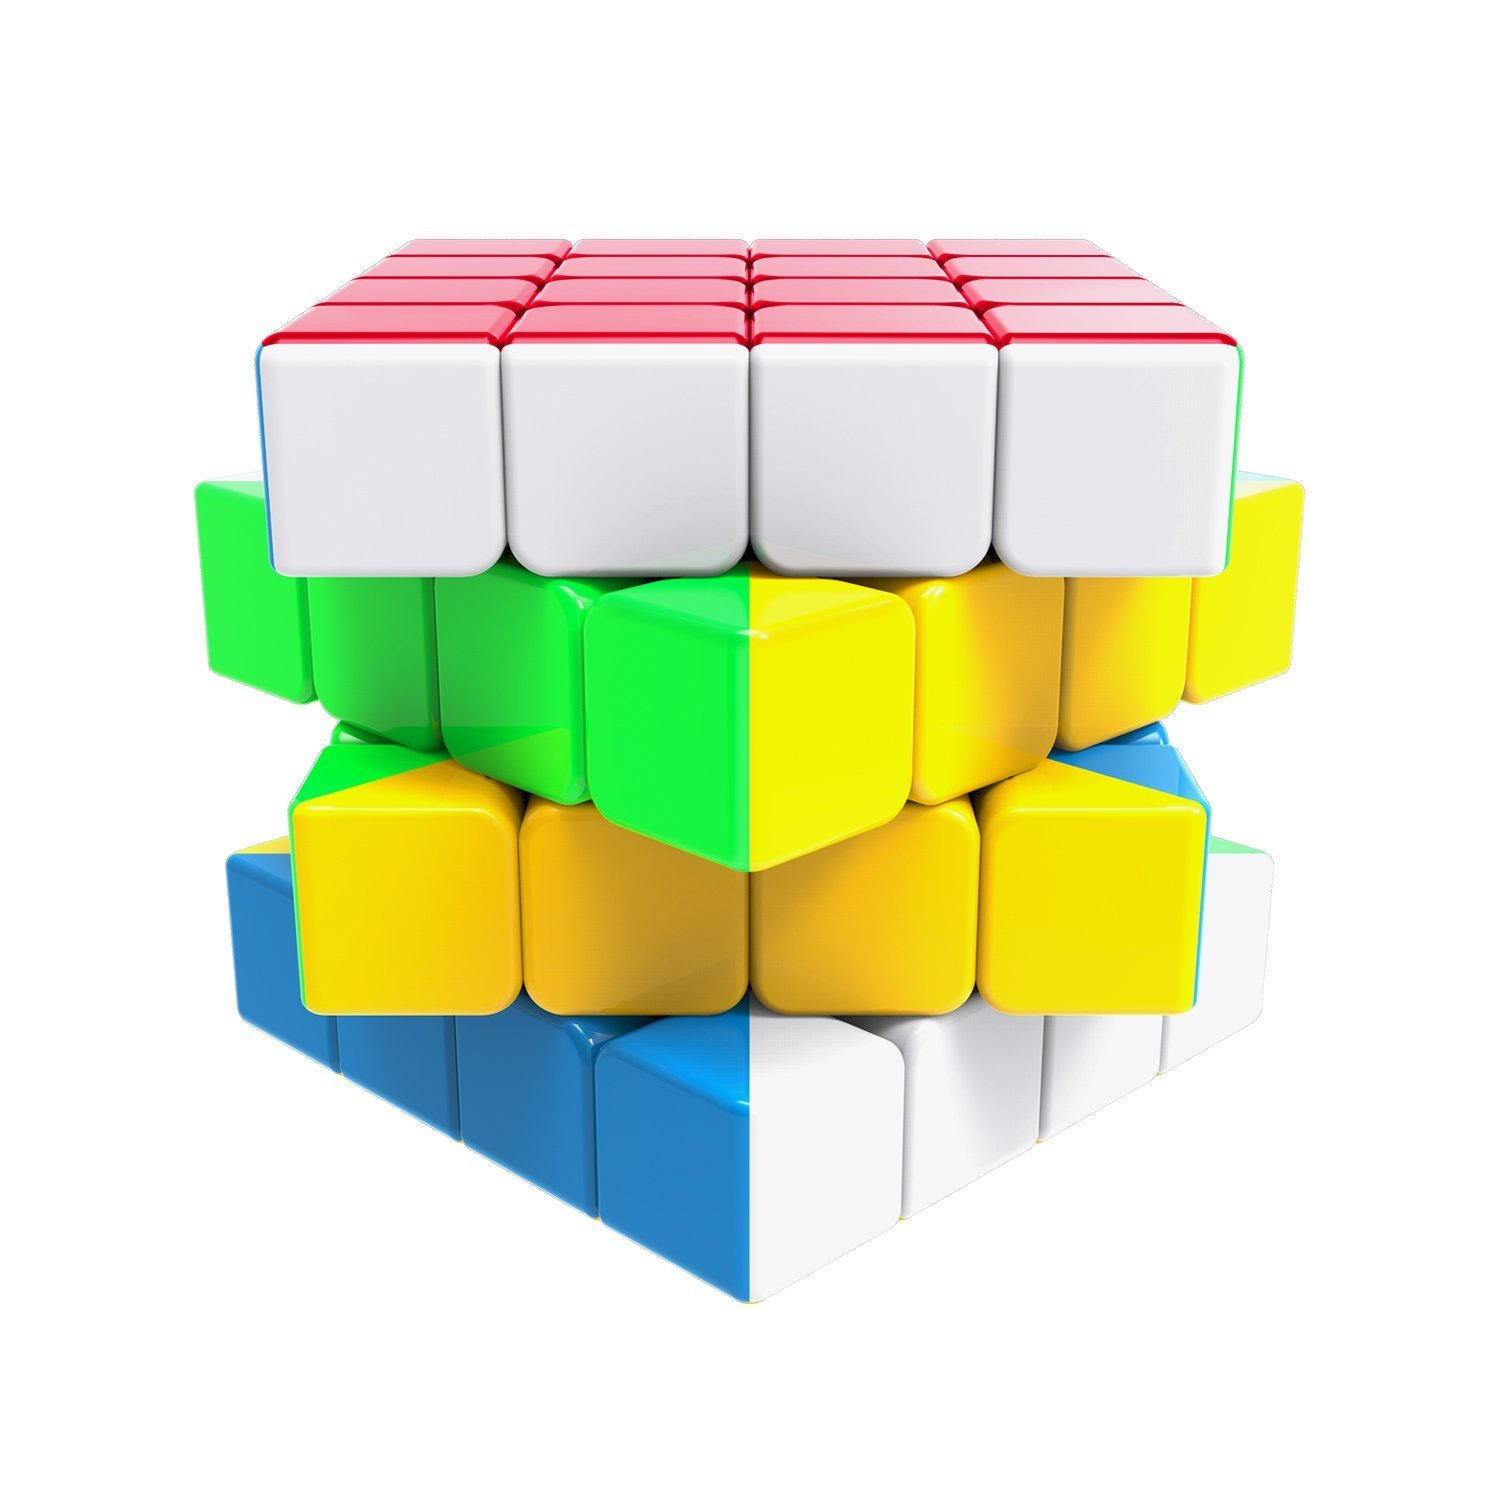 Newisland 4X4X4 Stickerless Magic Puzzle Cube with Instruction and Carrying Bag